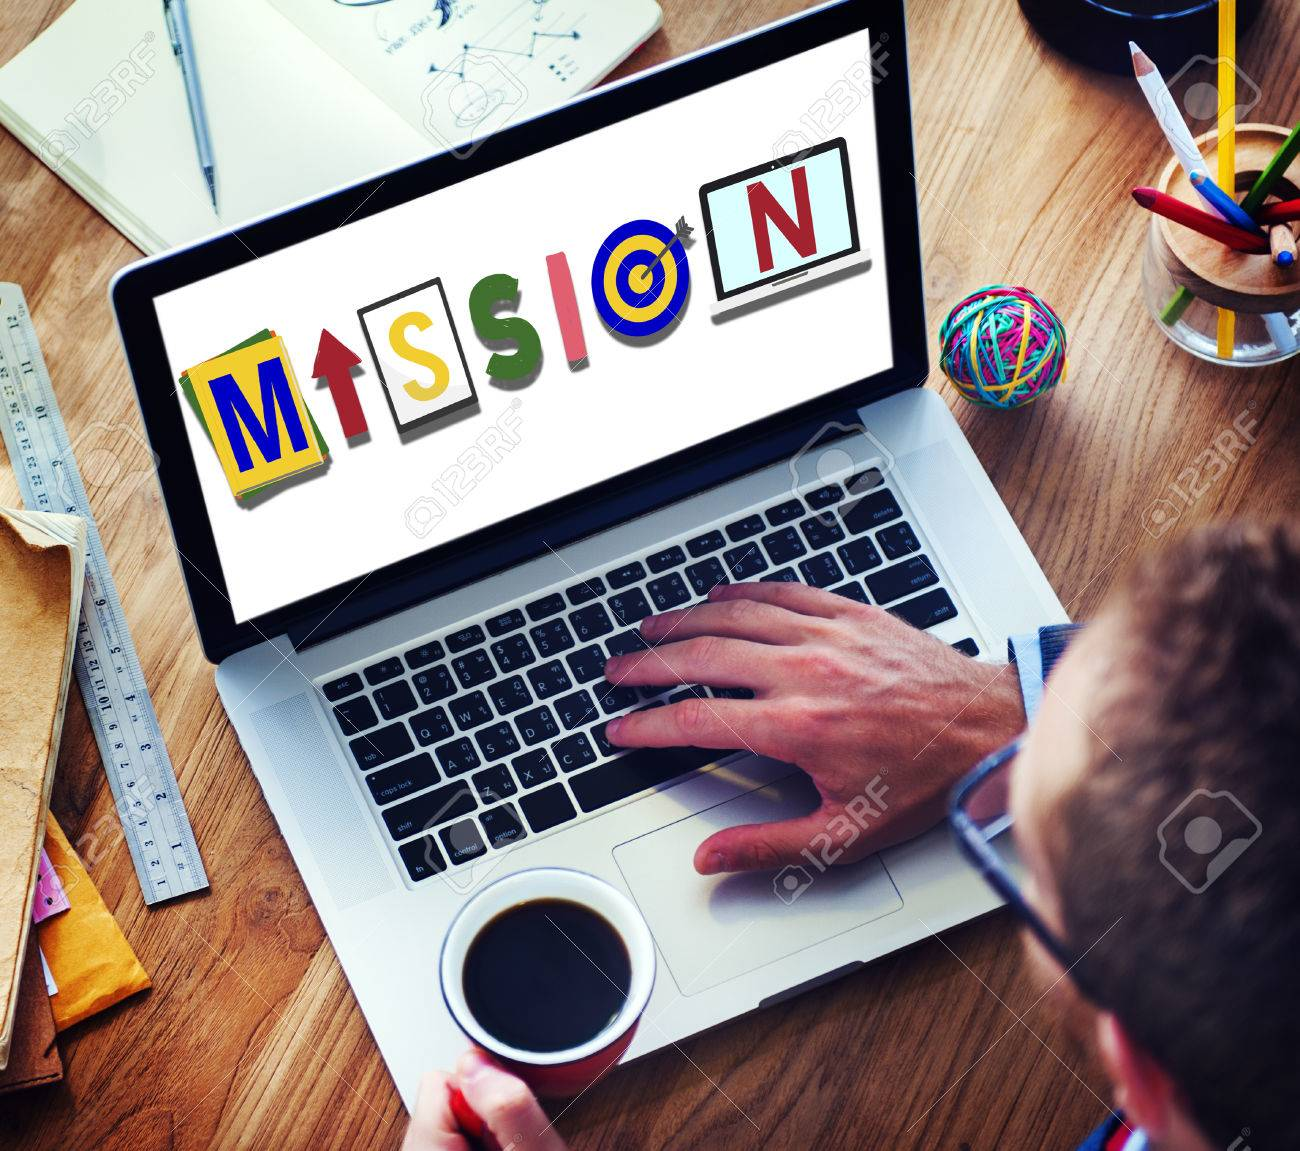 mission objective plan strategy target goals aspirations concept mission objective plan strategy target goals aspirations concept stock photo 57393002